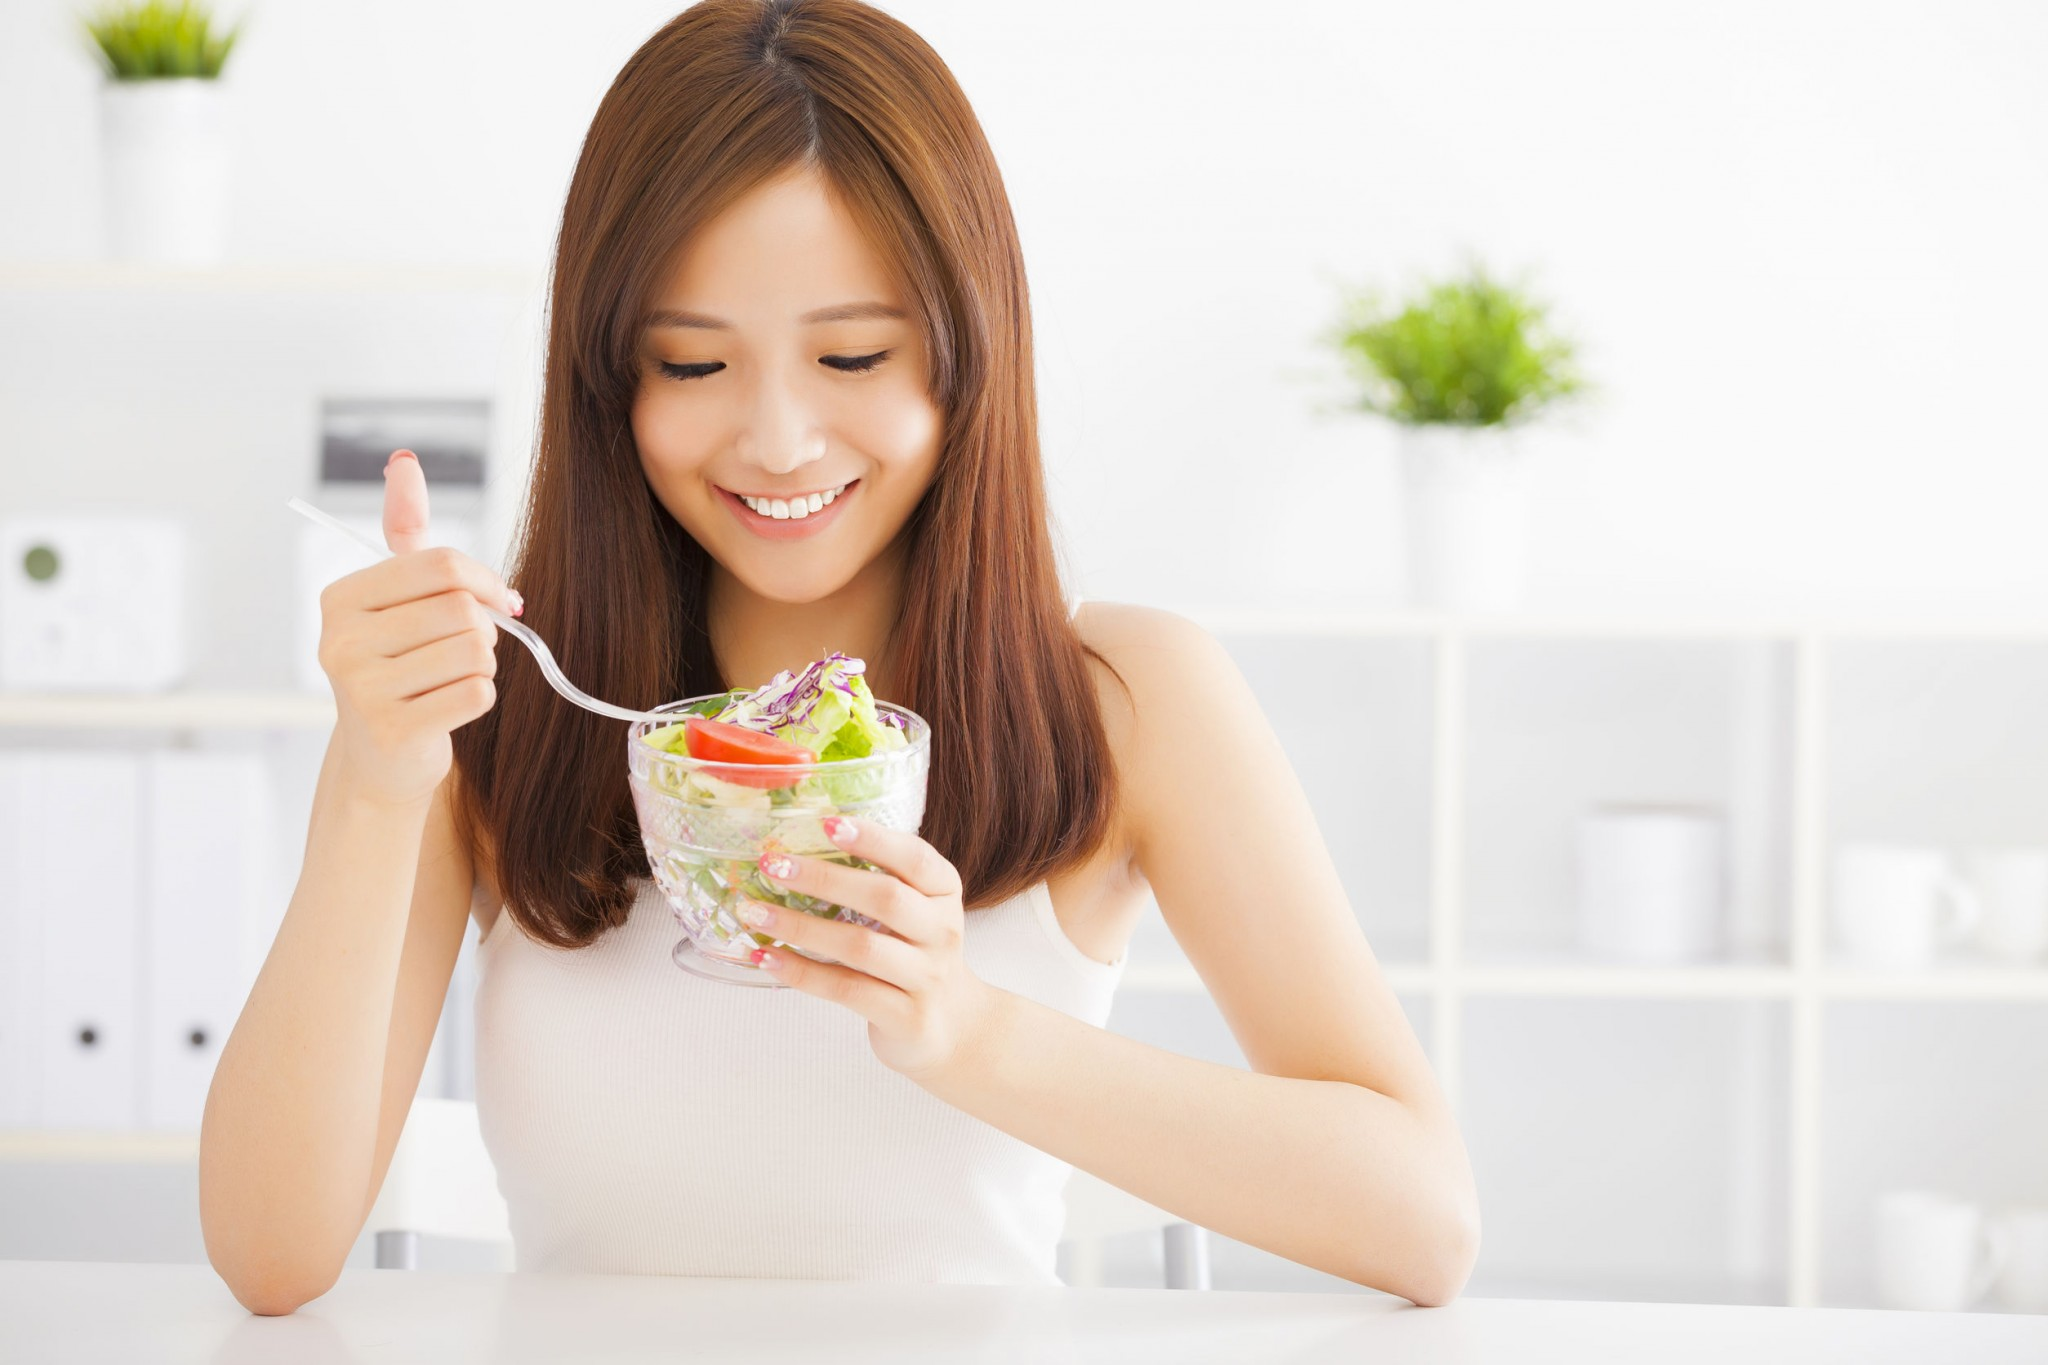 asian-young-woman-eating-healthy-food